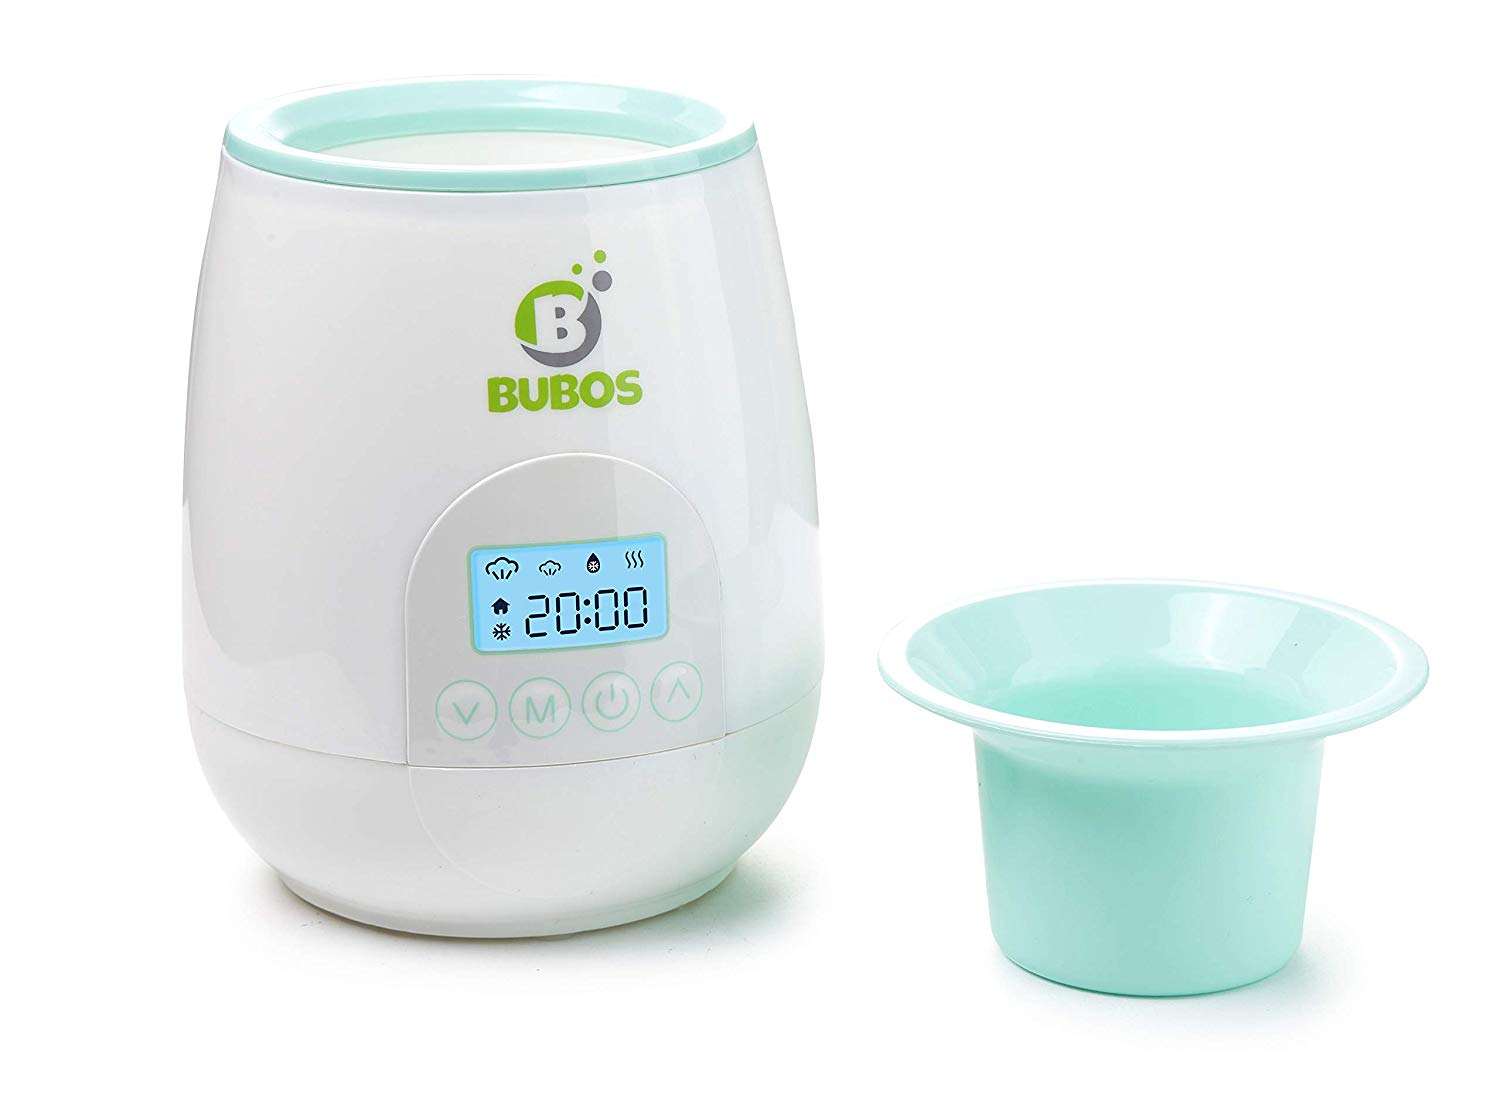 Bubos Smart Baby Bottle Warmer with Backlit LCD